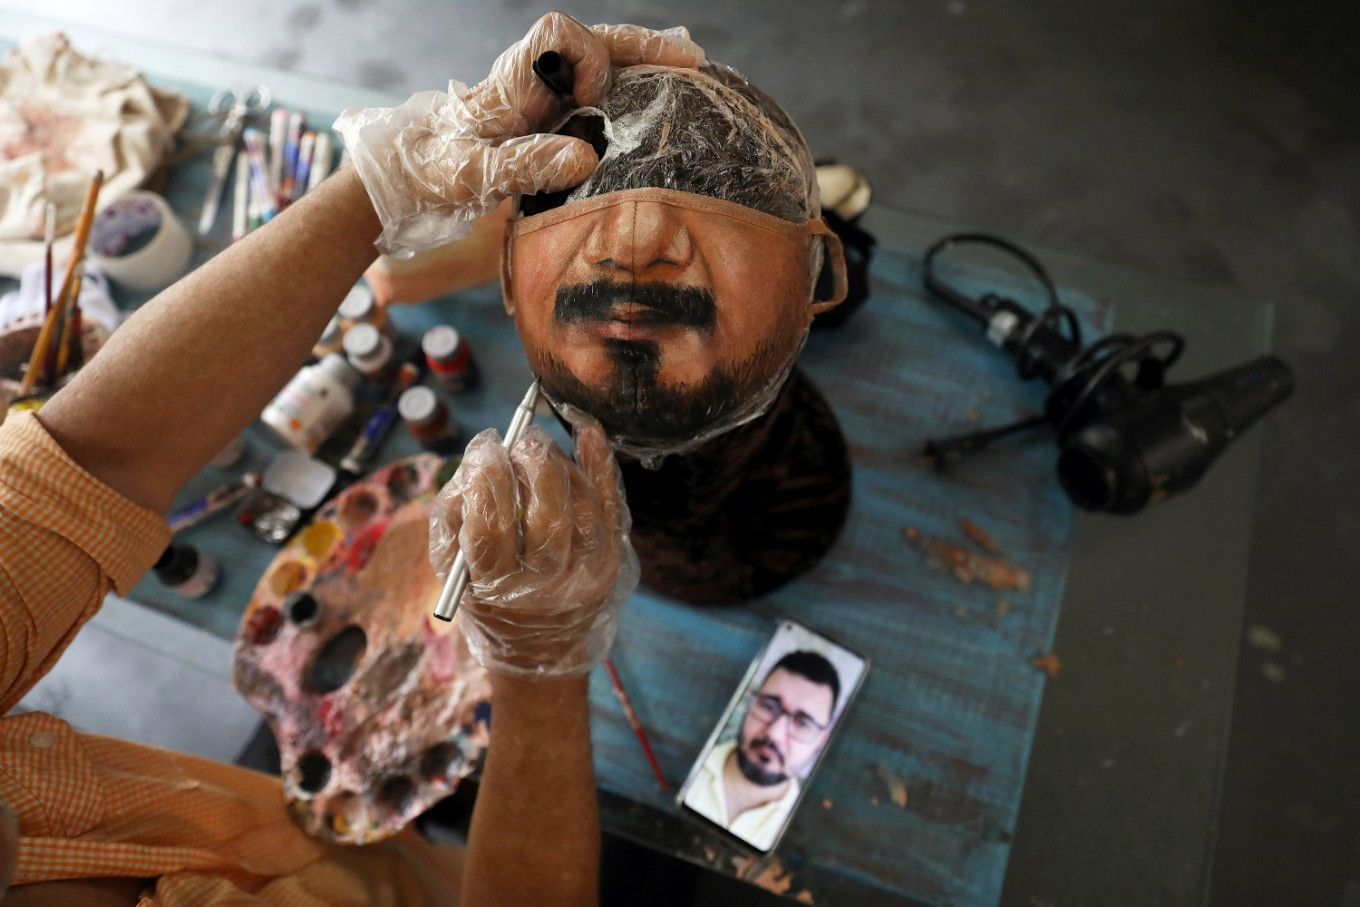 Brazil artist paints masks for those who want to show their face